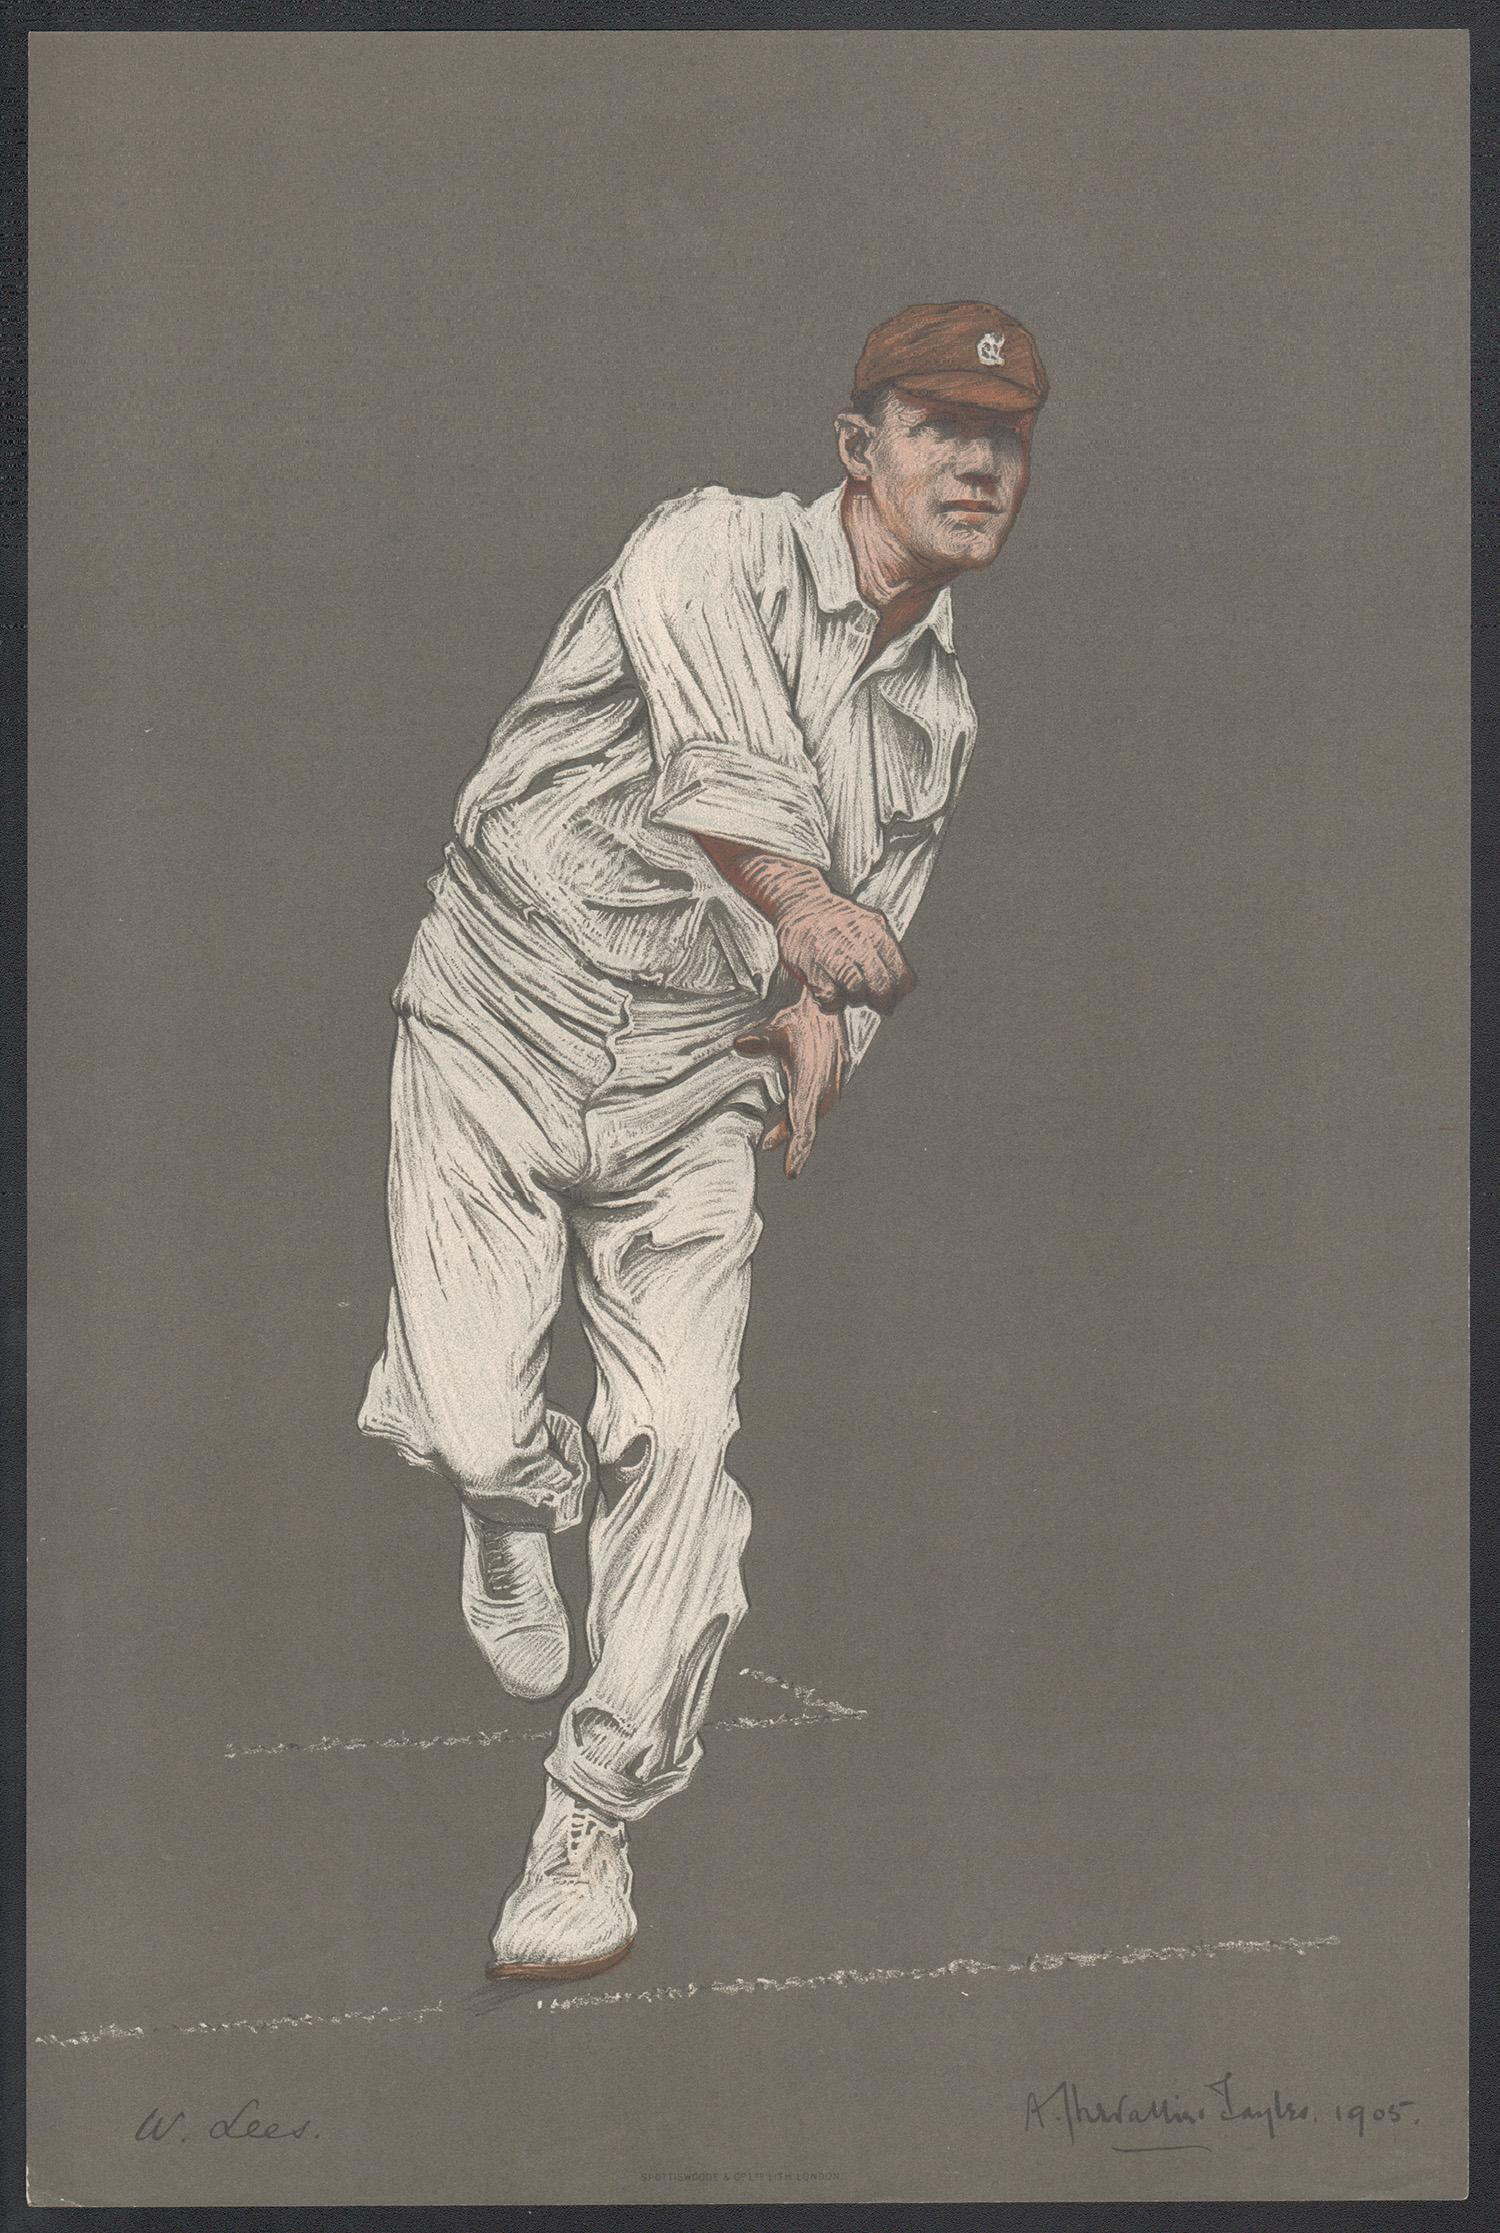 Walter Lees, Empire Cricketeer, English cricket portrait lithograph, 1905